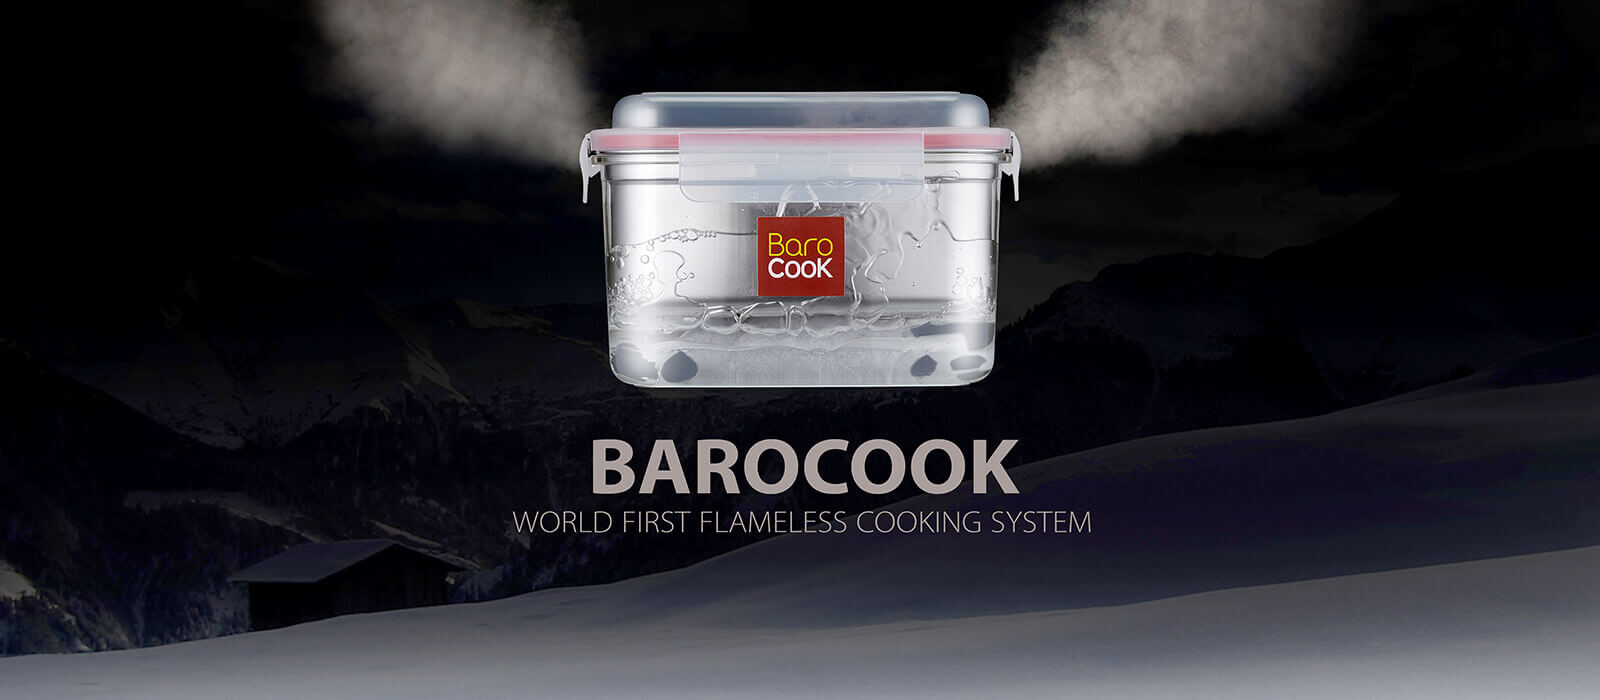 Barocook - World's First Flameless Cooking System